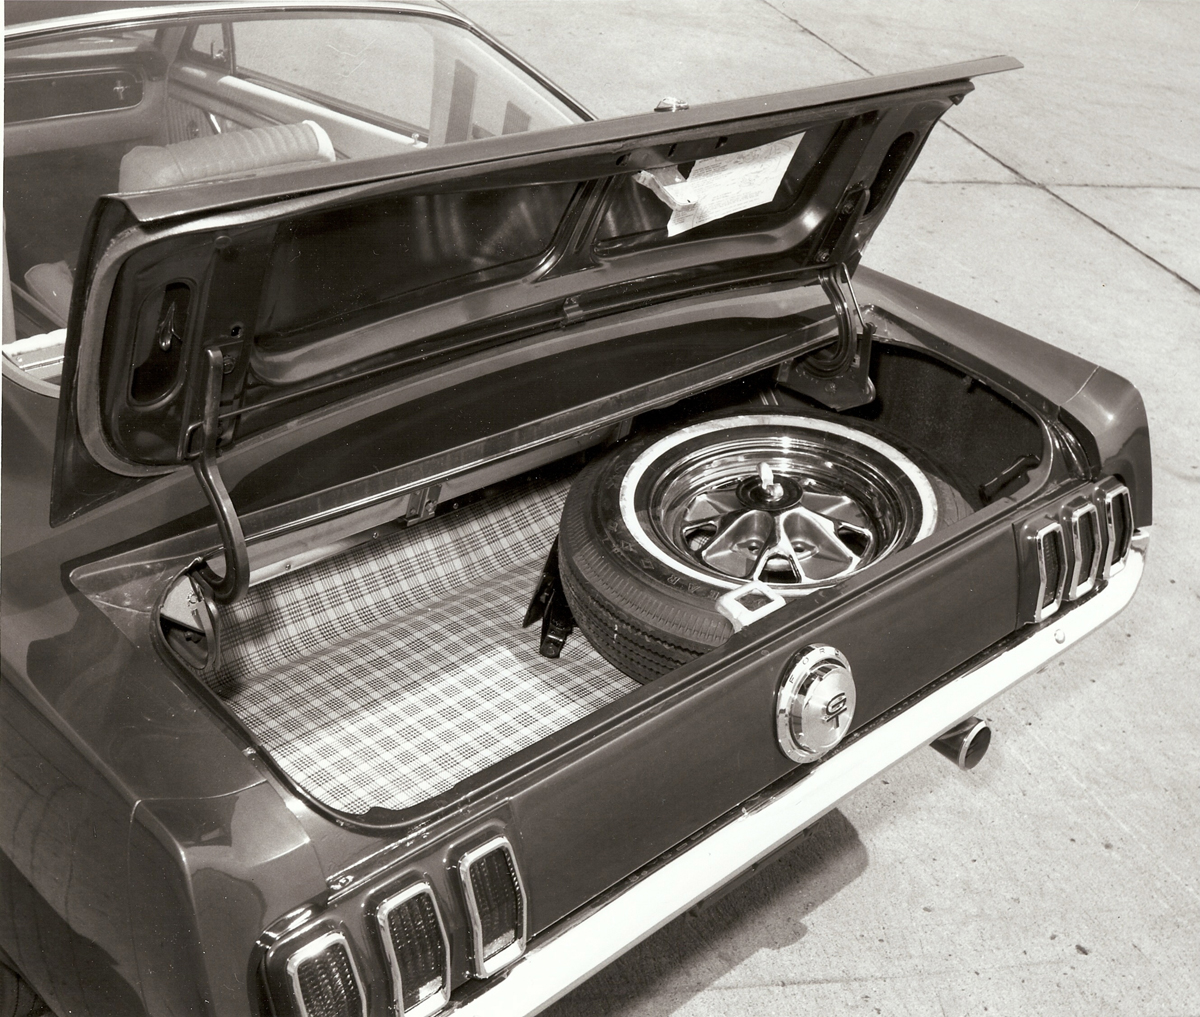 early-production-mustang